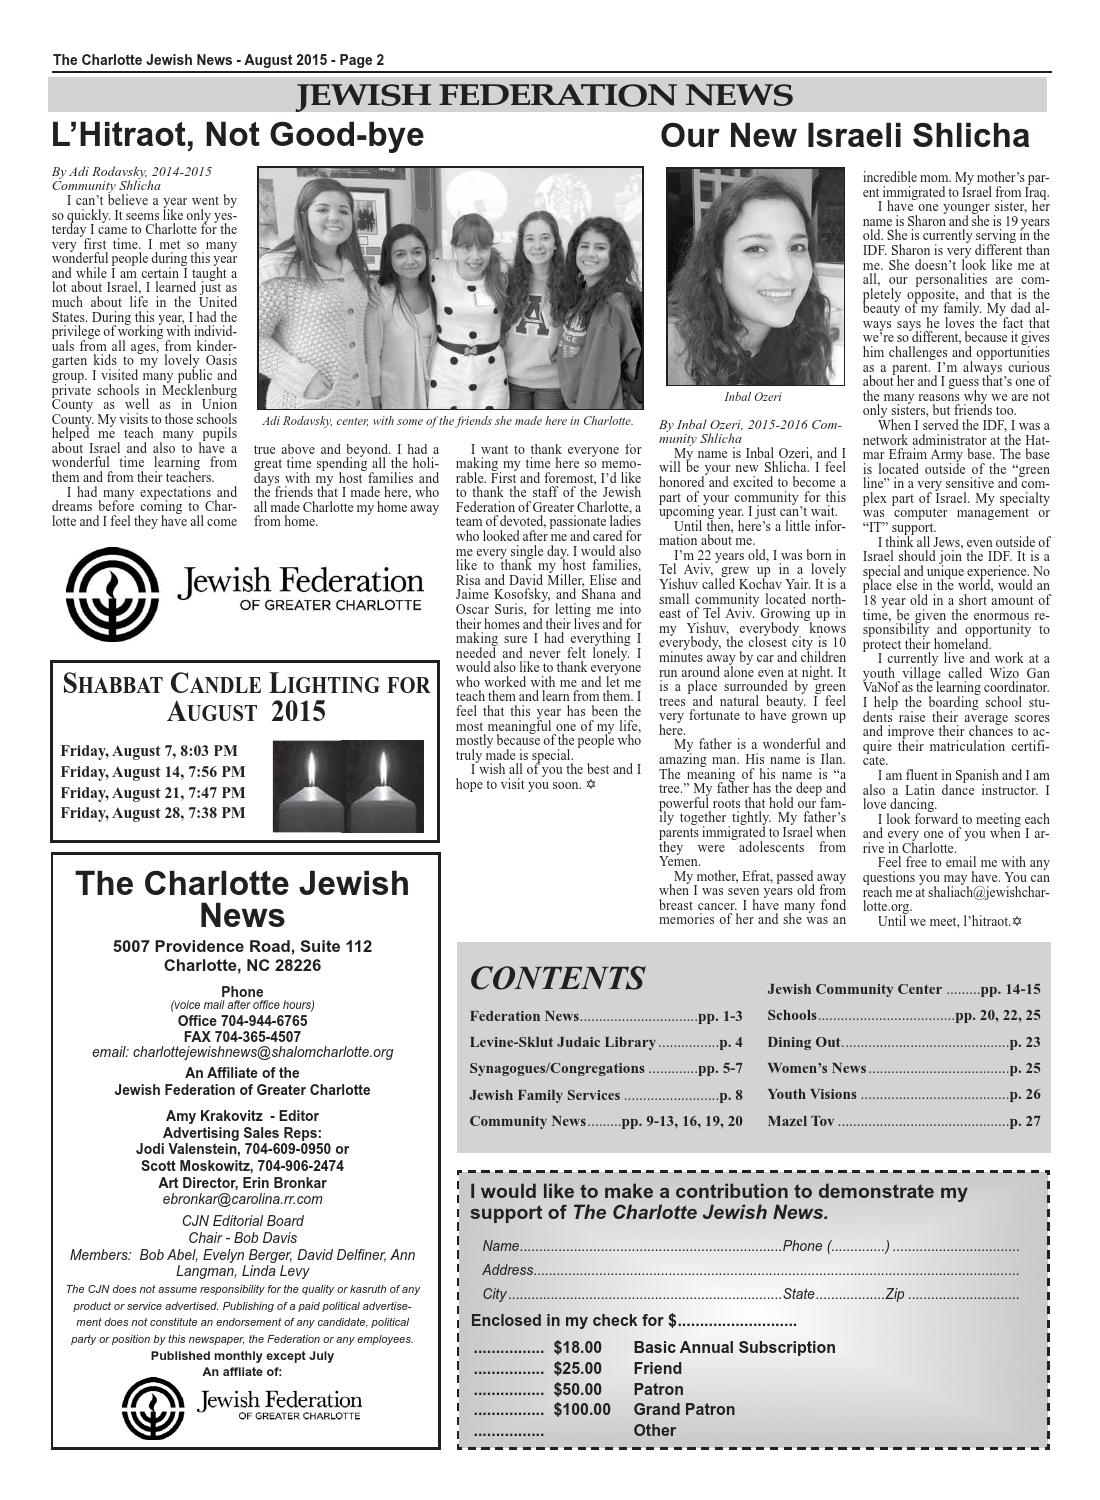 Visions Of Community 2015 Federation >> Charlotte Jewish News August 2015 By The Charlotte Jewish News Issuu